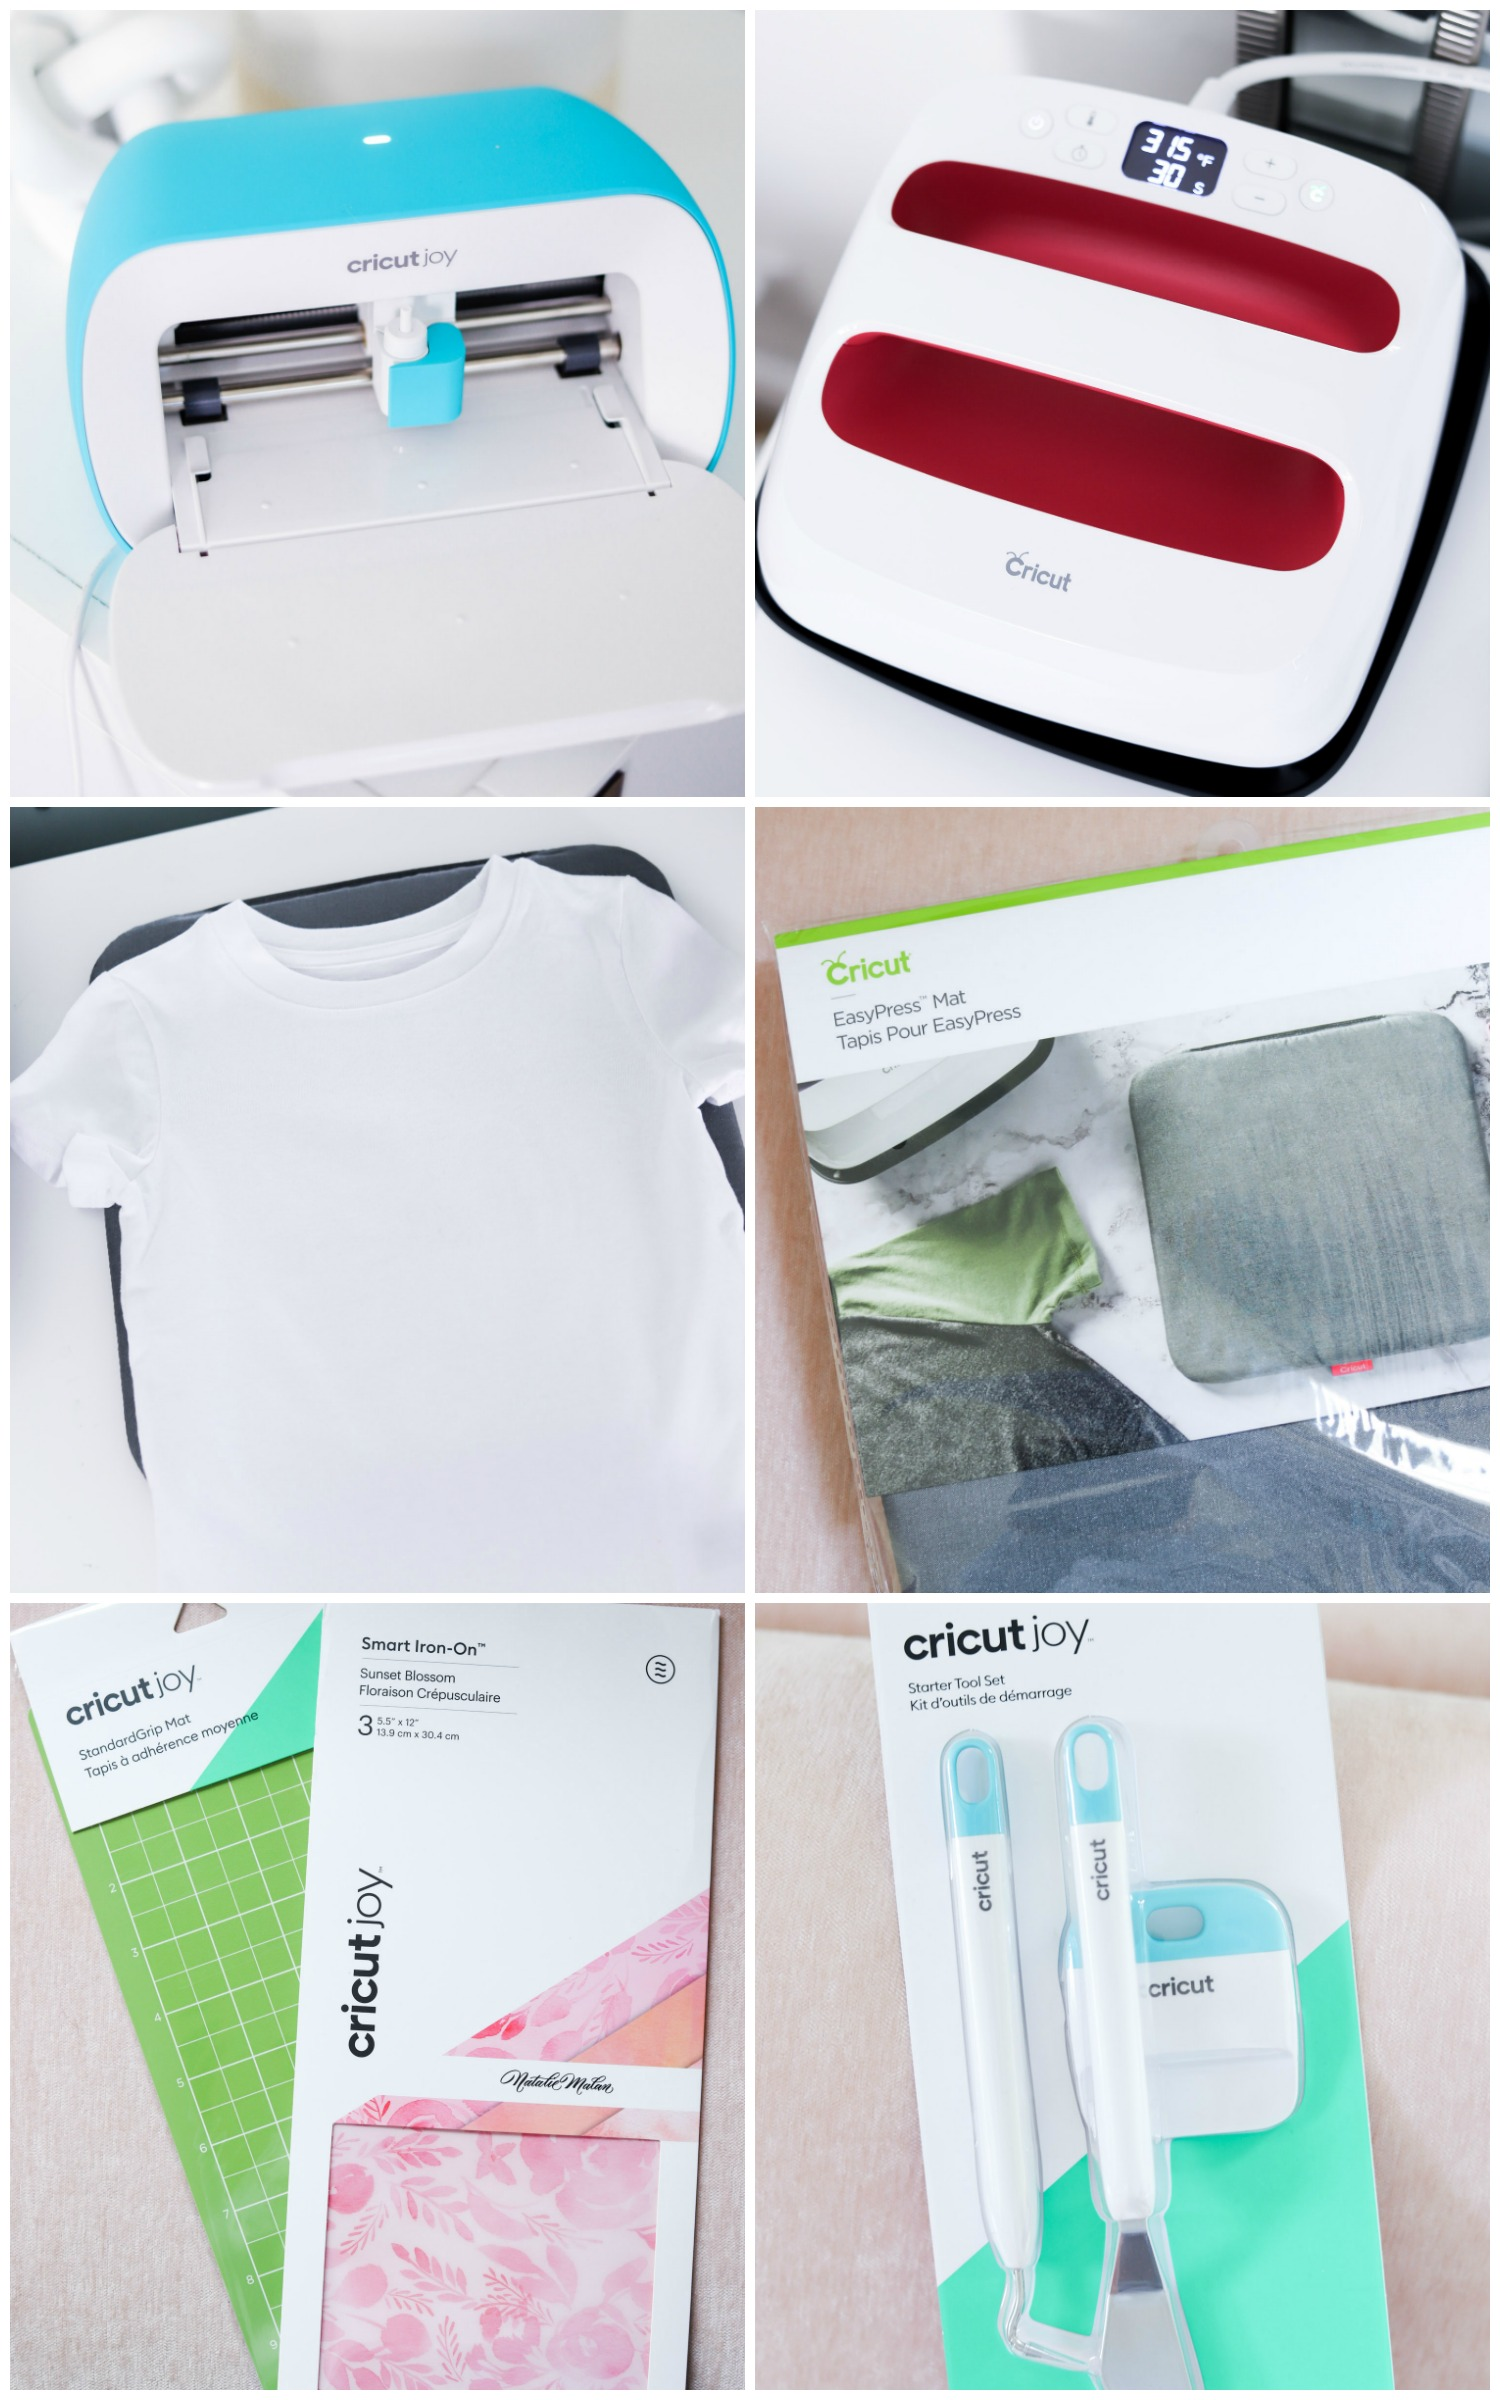 Easy step-by-step Cricut Joy tutorial for making custom t-shirts at home with Orlando, Florida blogger Ashley Brooke Nicholas